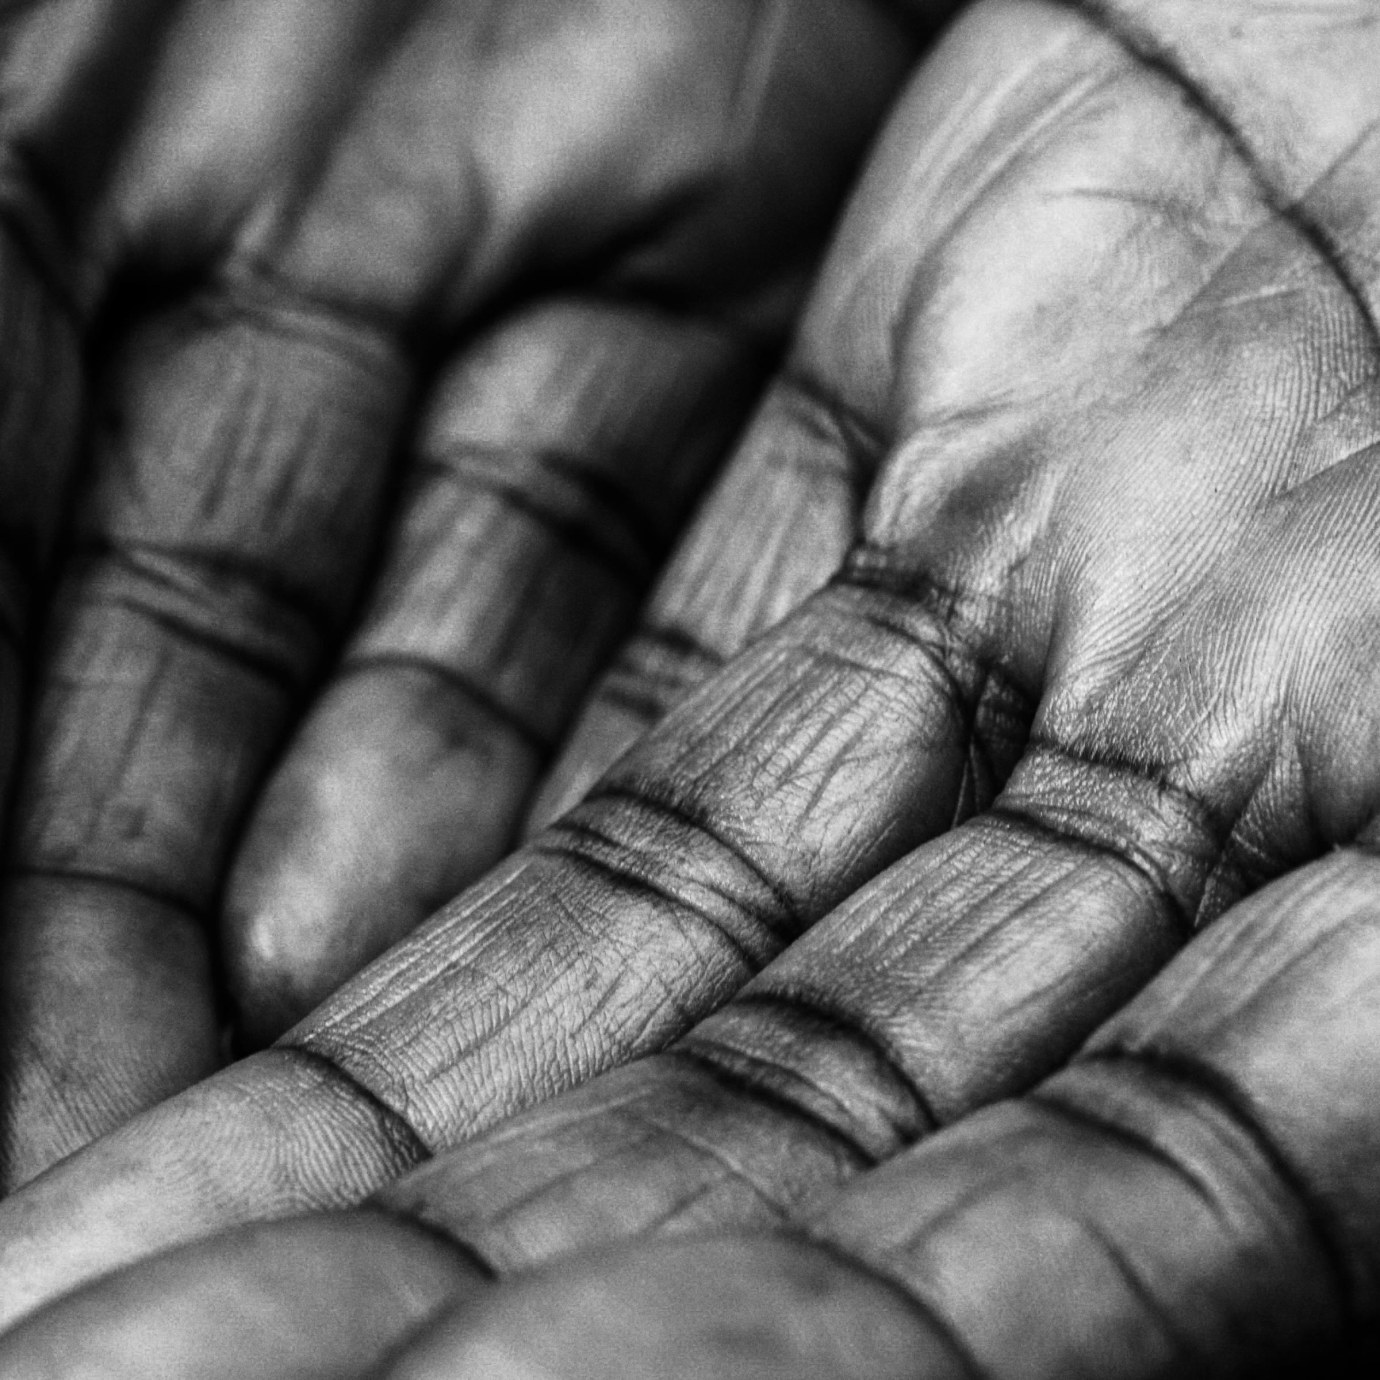 Close up detail of hands in black and white.